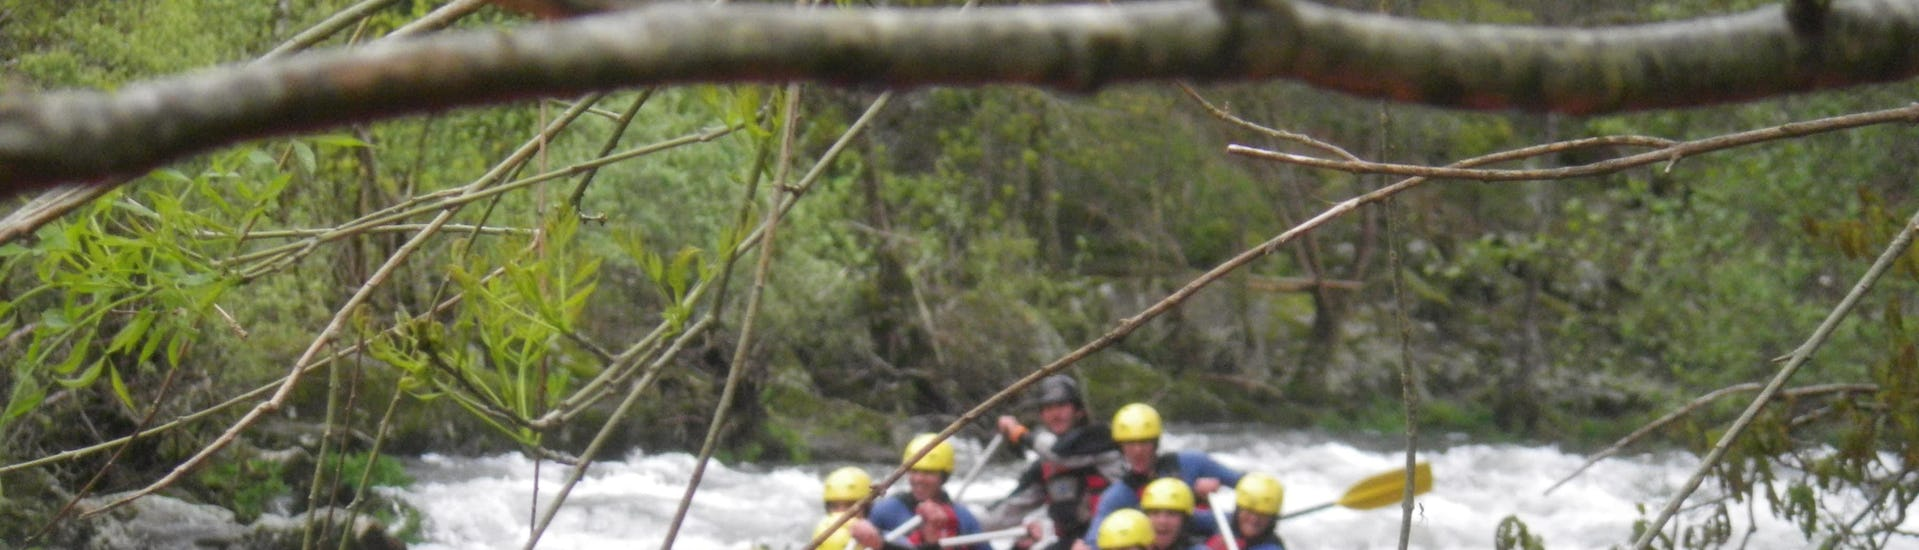 """Rafting """"White Water Action"""" - Río Deza"""